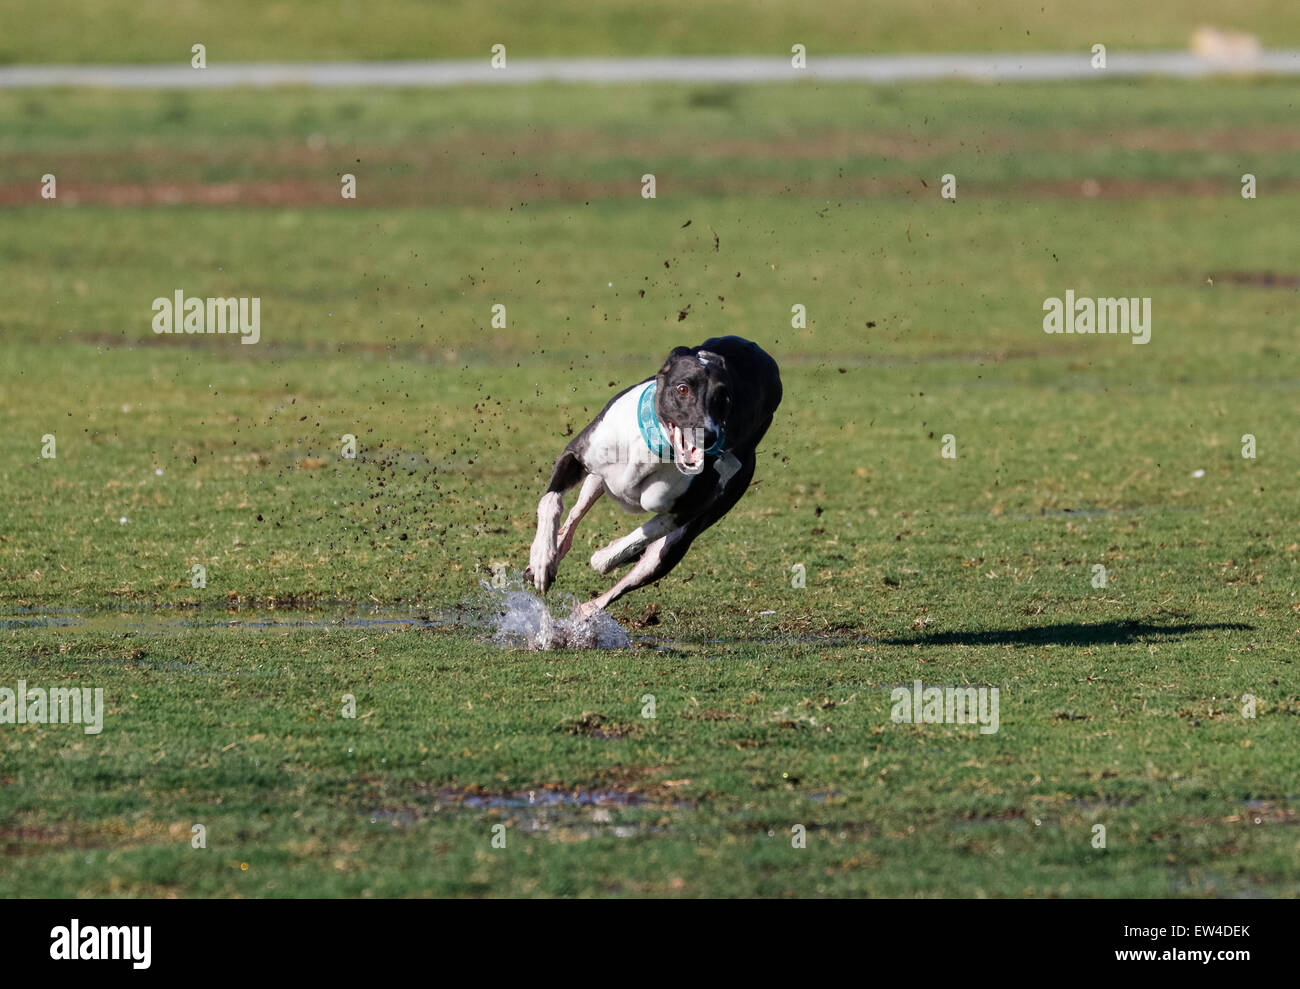 Whippet running in the wet grass and spraying mud - Stock Image